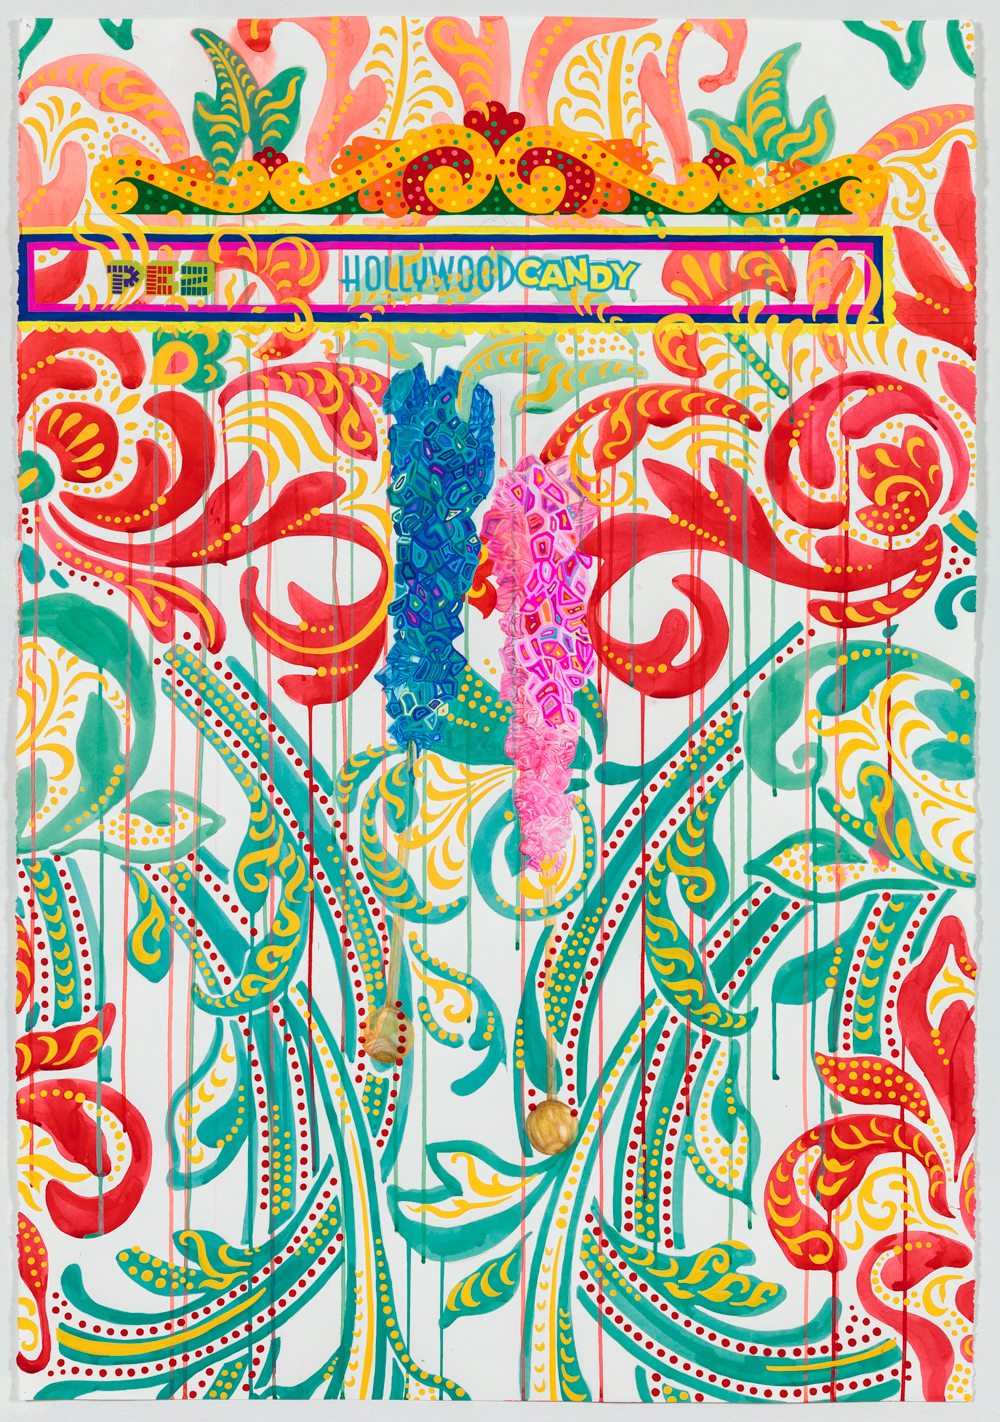 """Nebraska Suite No. 4: Hollywood Candy   Colored pencil, acrylic ink and gouache on paper  44"""" x 30""""  2015"""